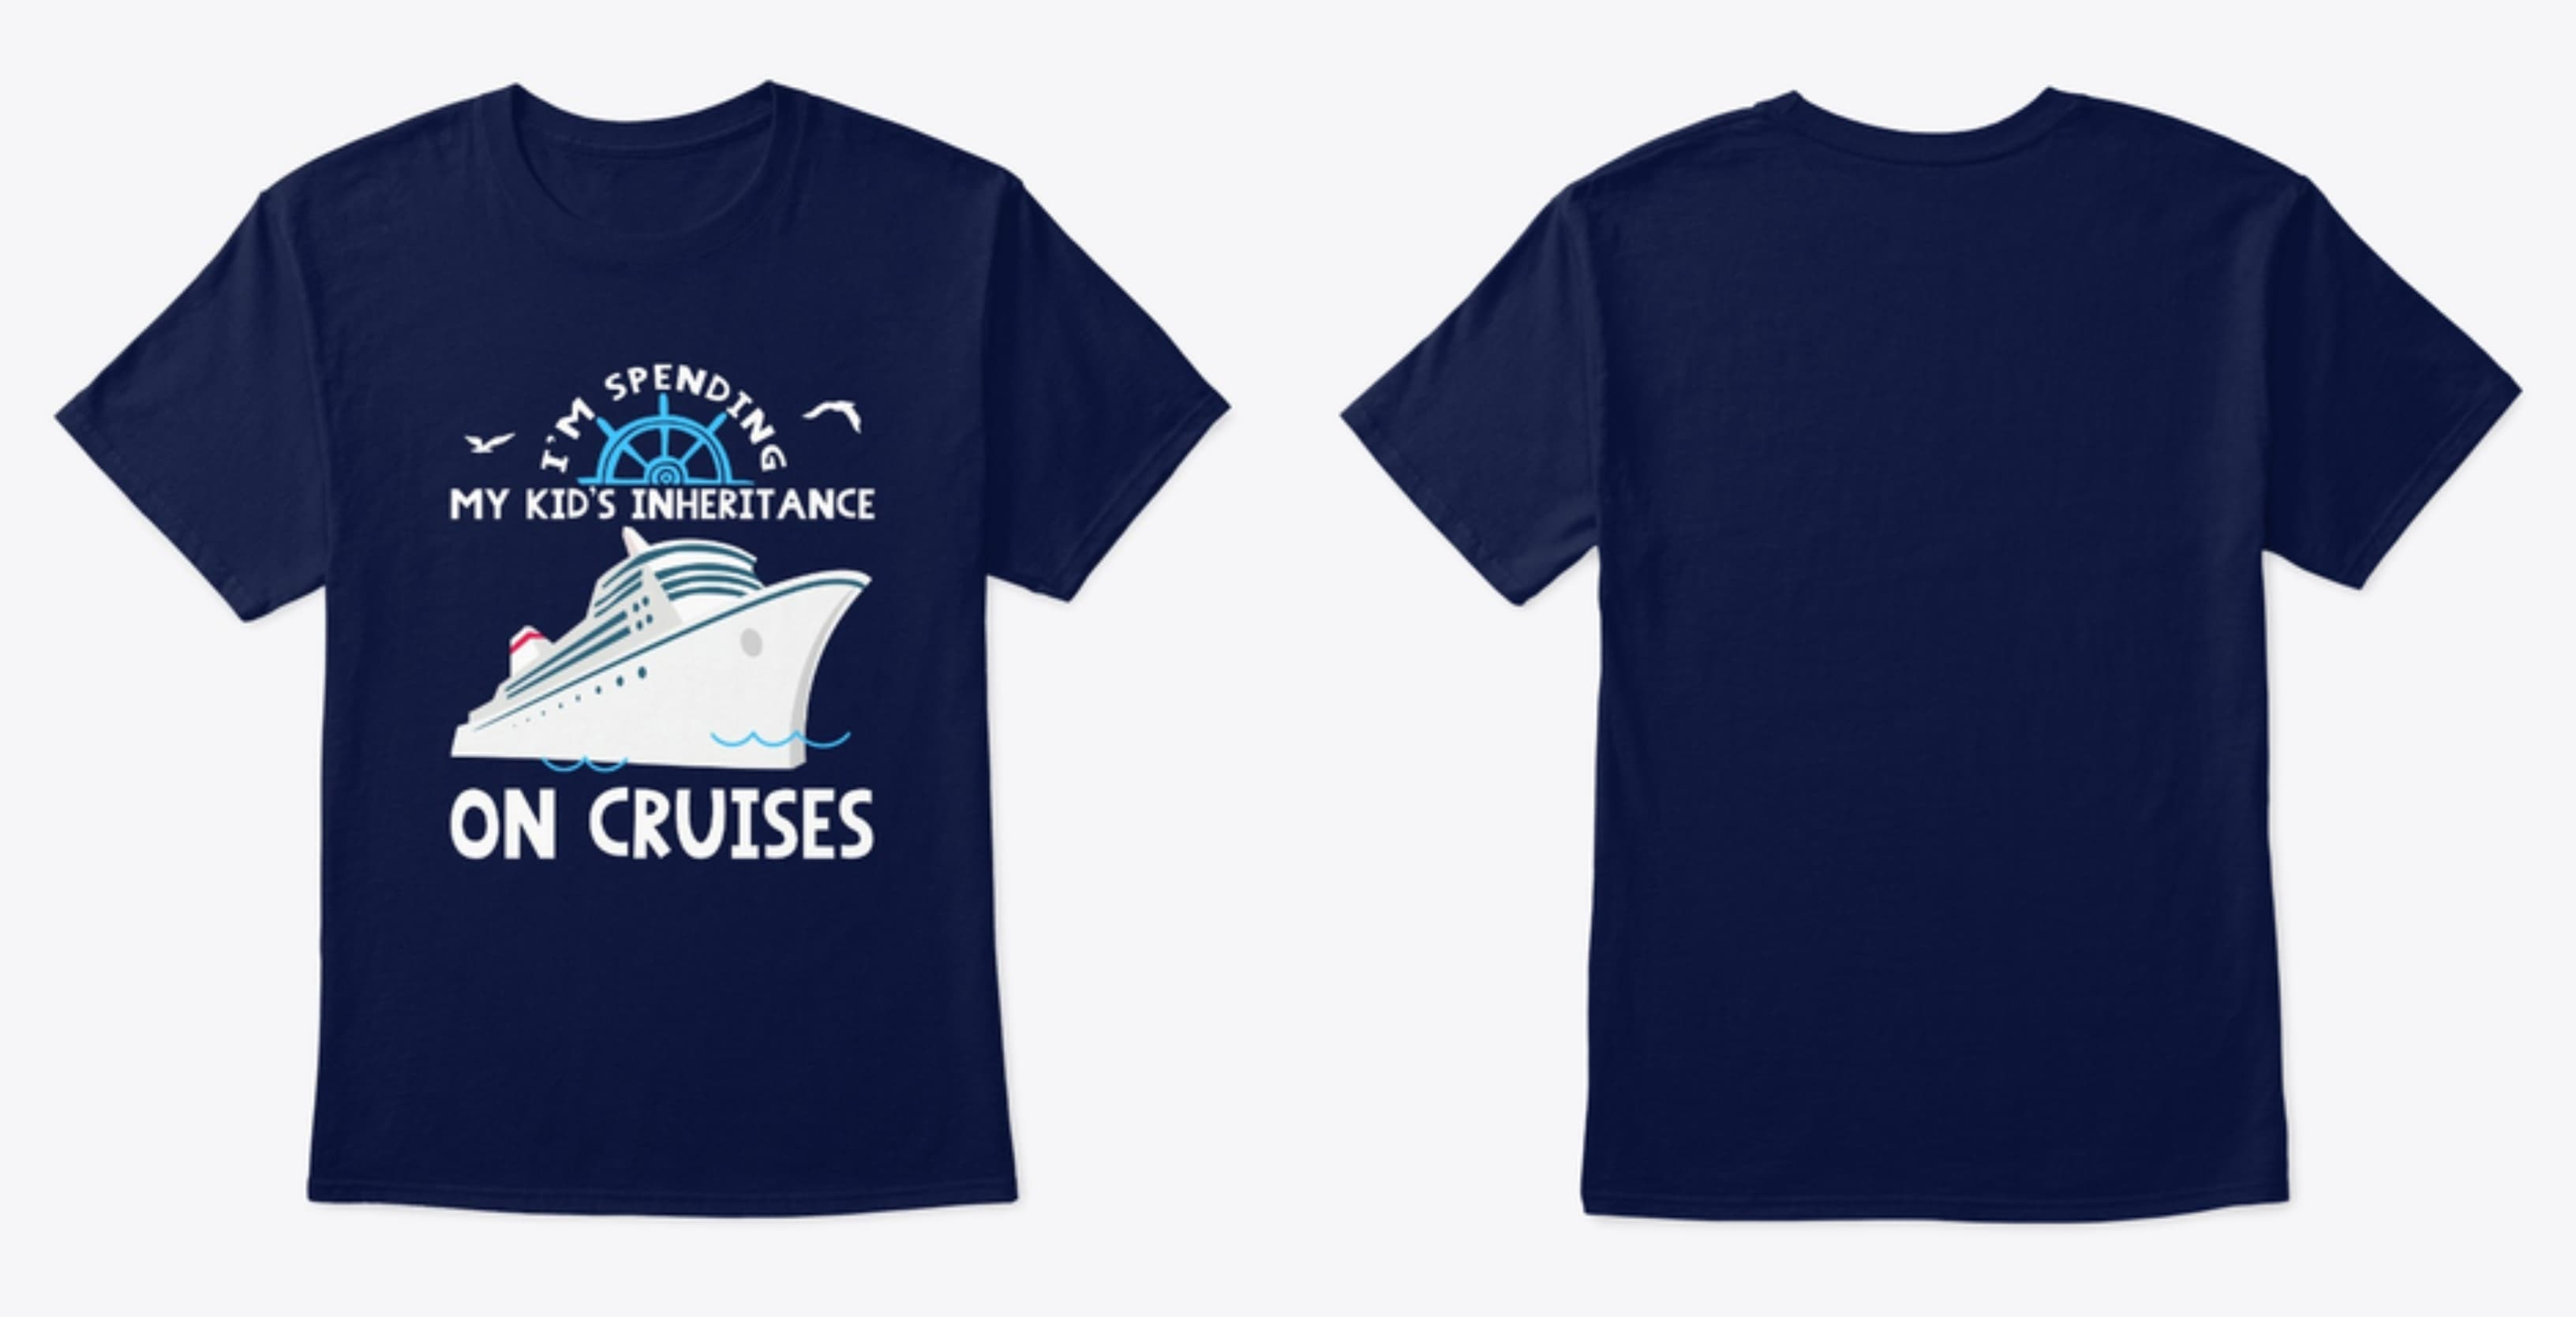 Funny Cruise Tshirt. I'm spending my kid's inheritance on cruises.